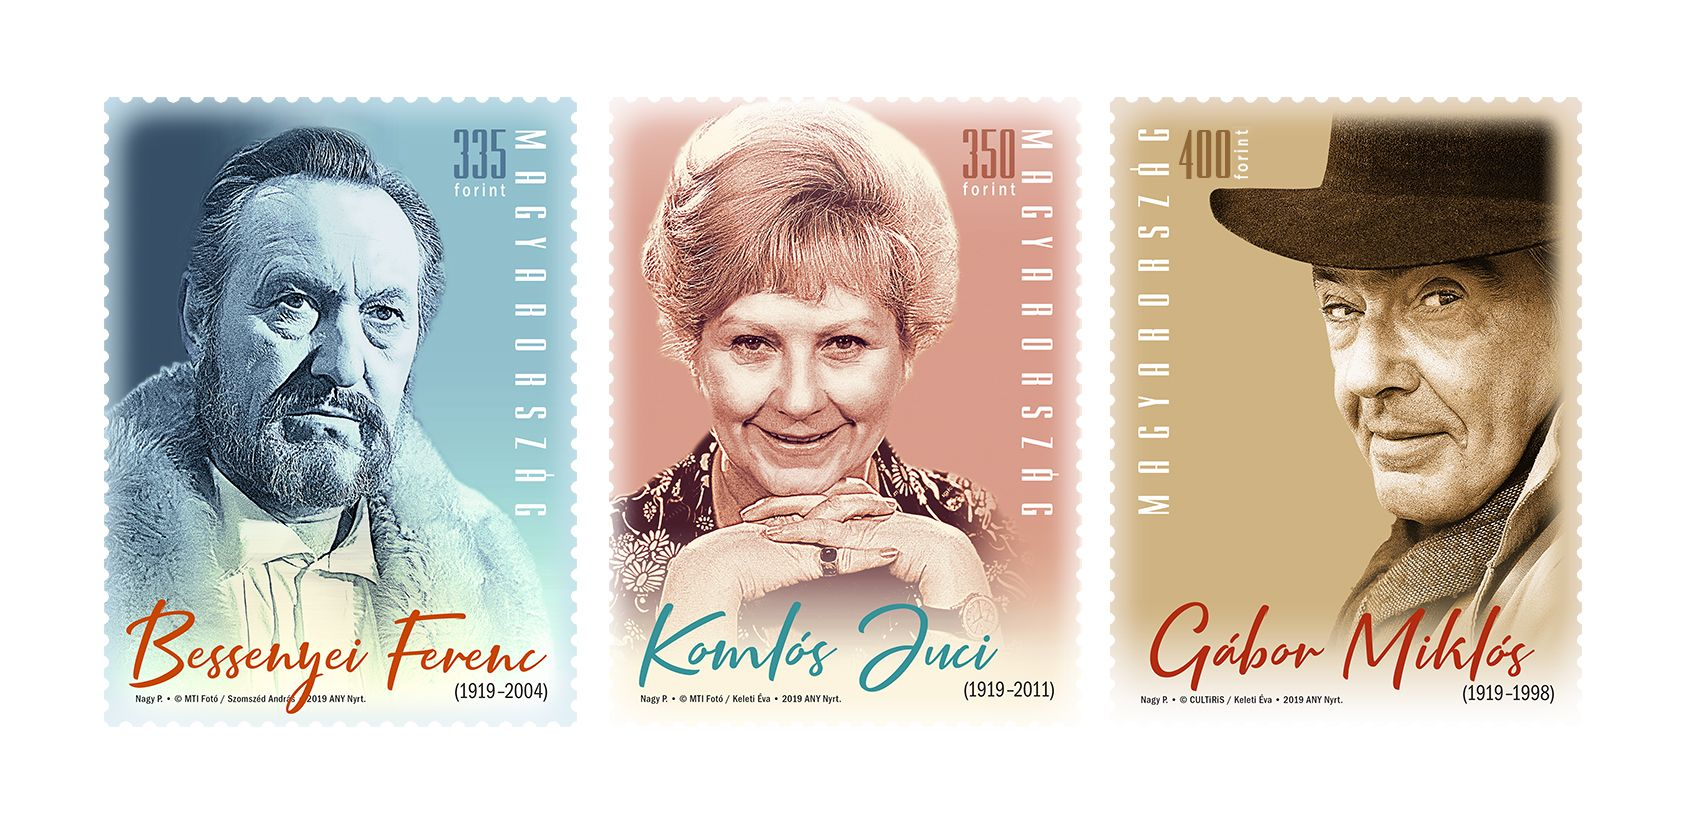 Famous Hungarian performers:centenary of the birth of Ferenc Bessenyei, Juci Komlós  and Miklós Gábor